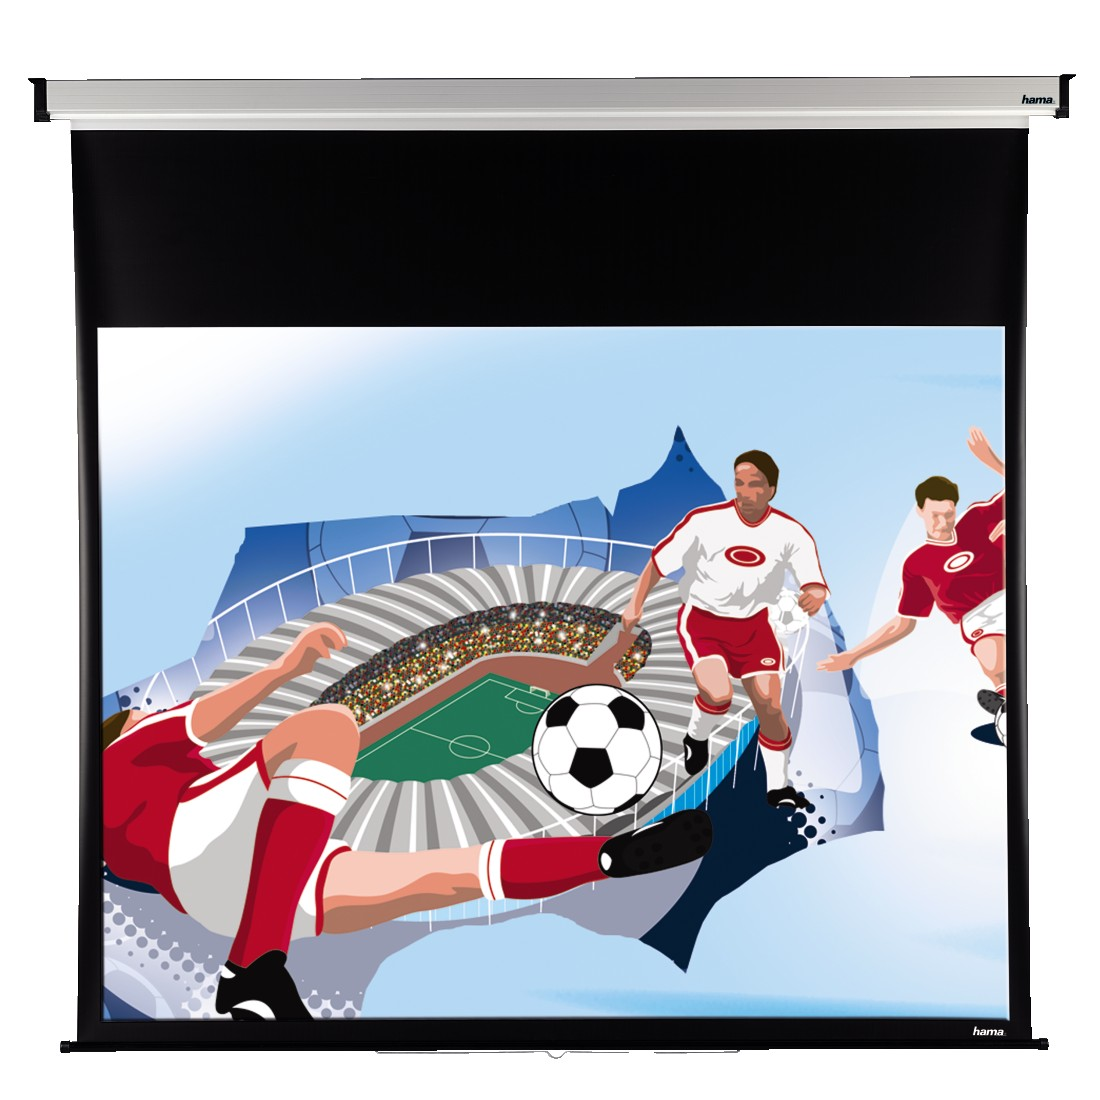 abx2 High-Res Image 2 - Hama, Roller Projection Screen, 240 x 195 cm, 4:3